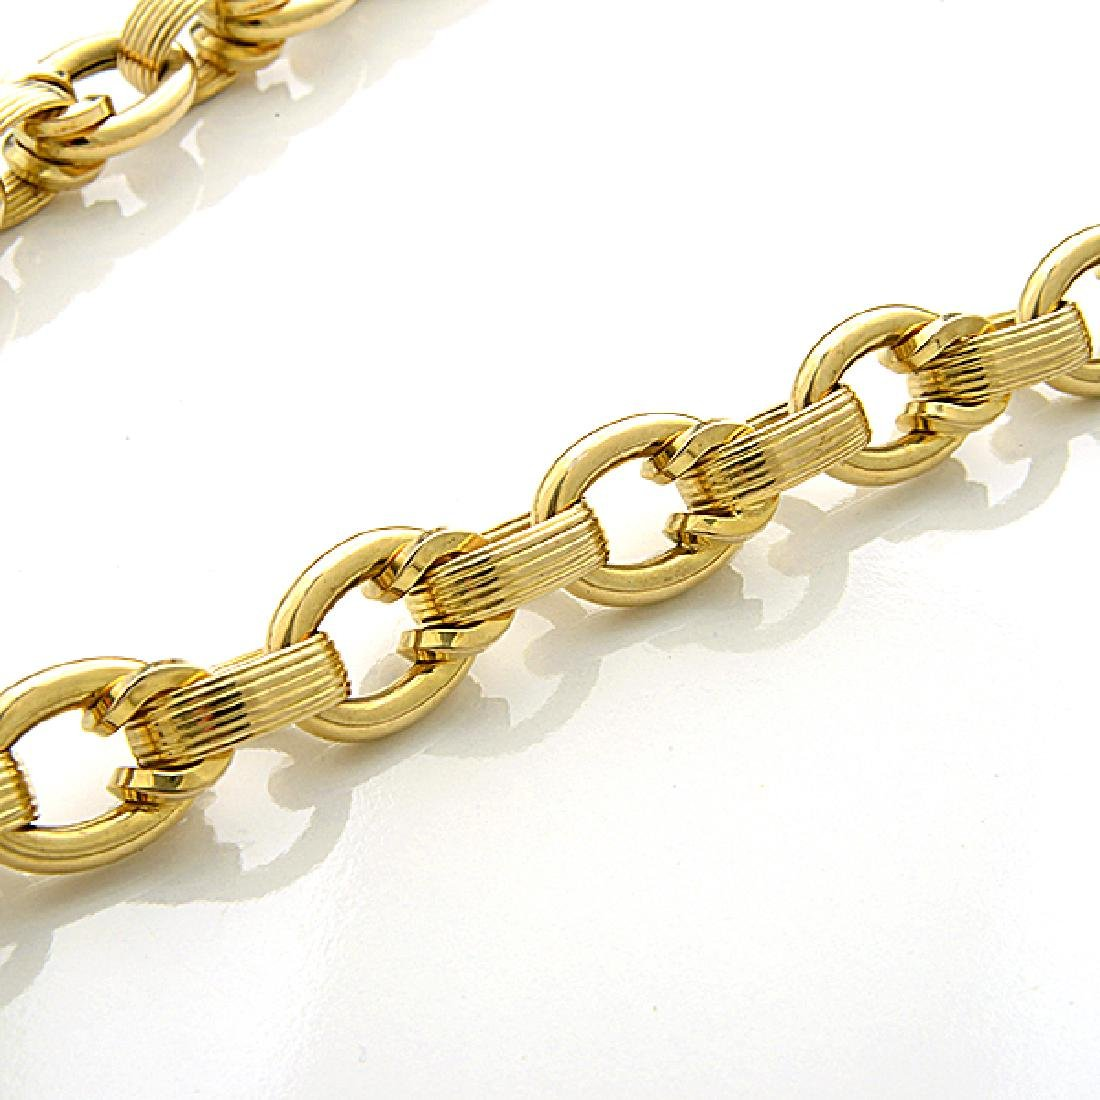 14k Yellow Gold Necklace. - 3